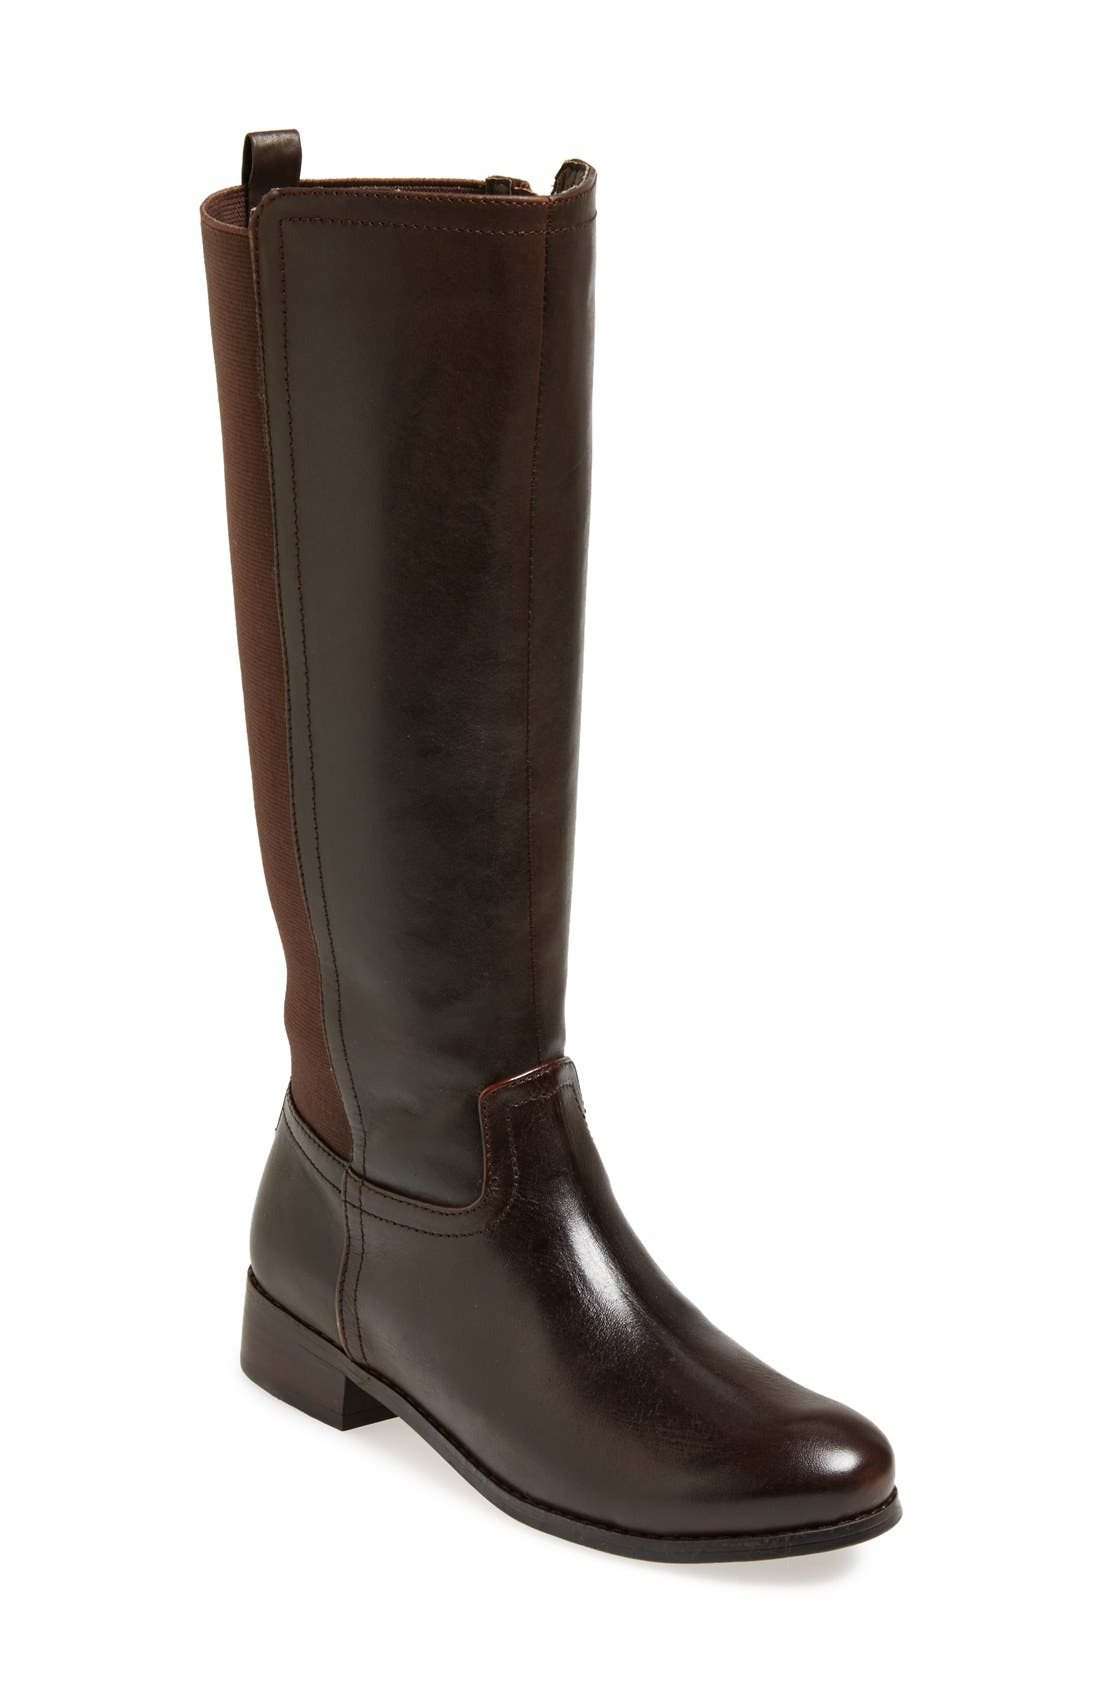 Main Image - Trotters 'Signature Lucia' Leather Riding Boot (Women)